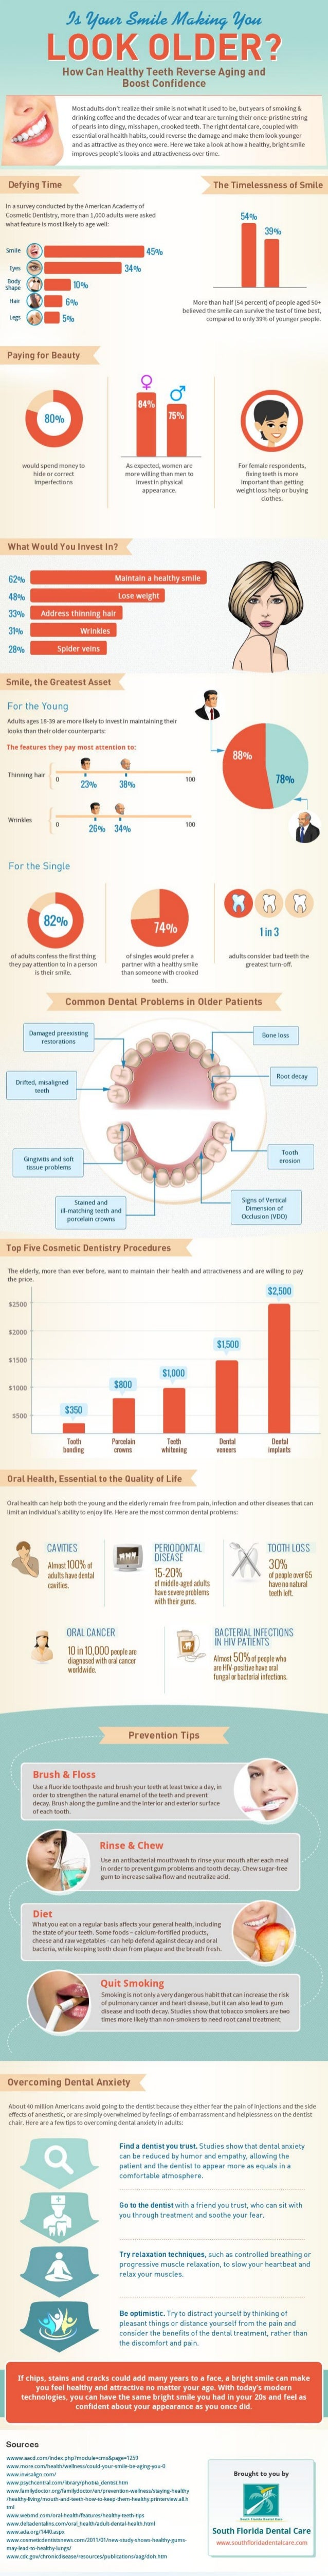 Is Your Smile Making You Look Older?